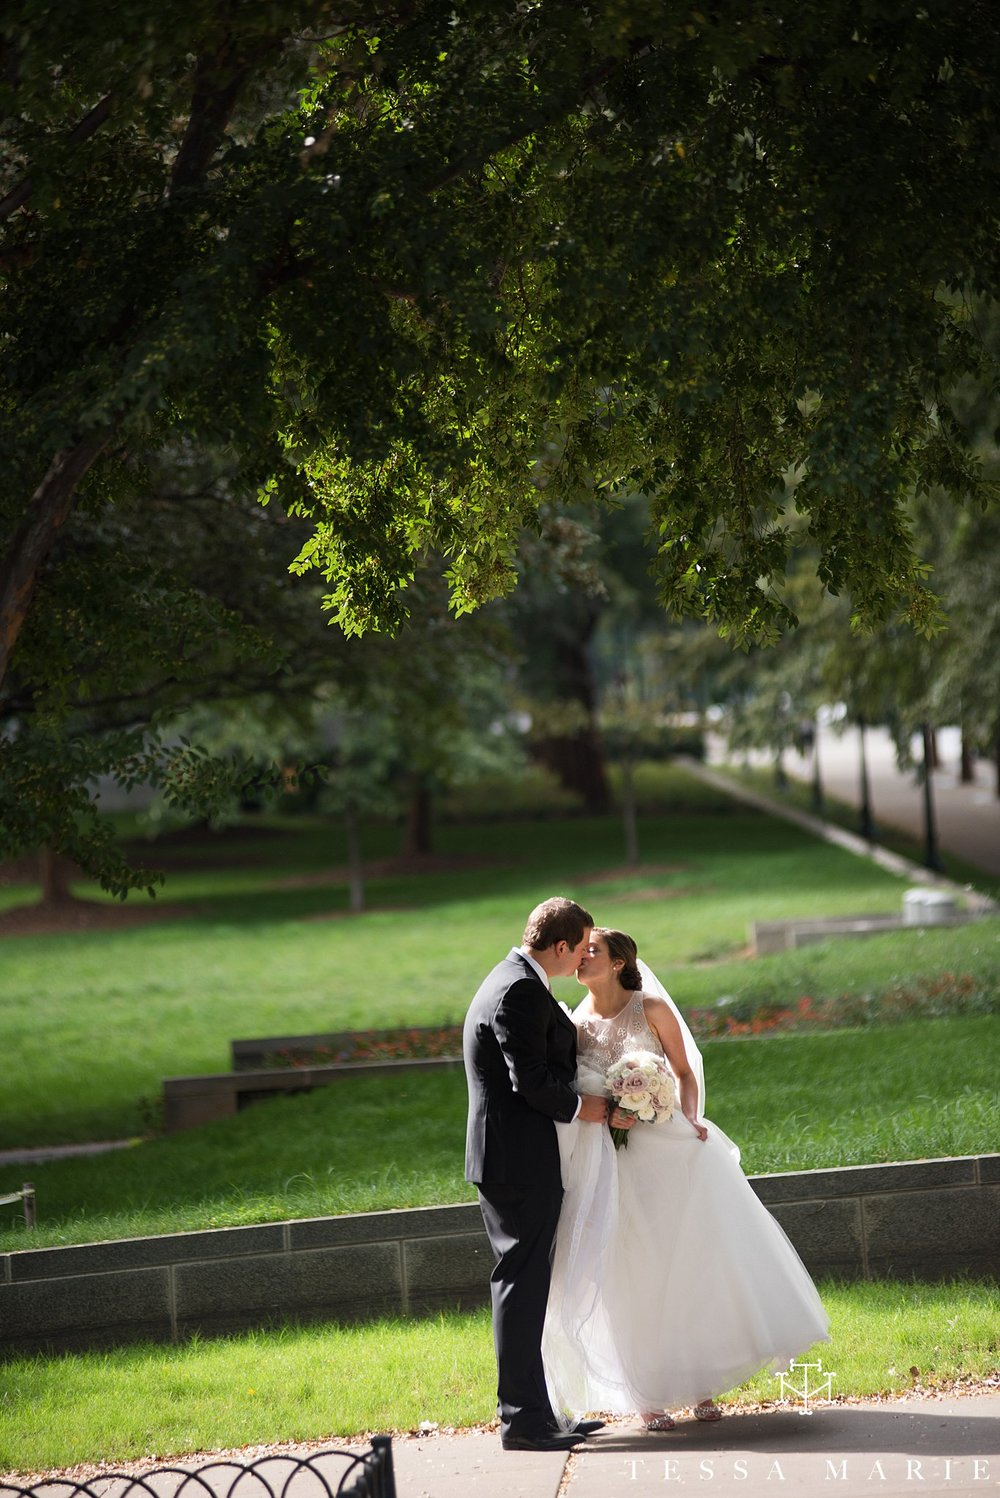 atlanta_wedding_photographer_tessa_marie_weddings_lowes_hotel_peachtree_midtown_fall_wedding_0232.jpg